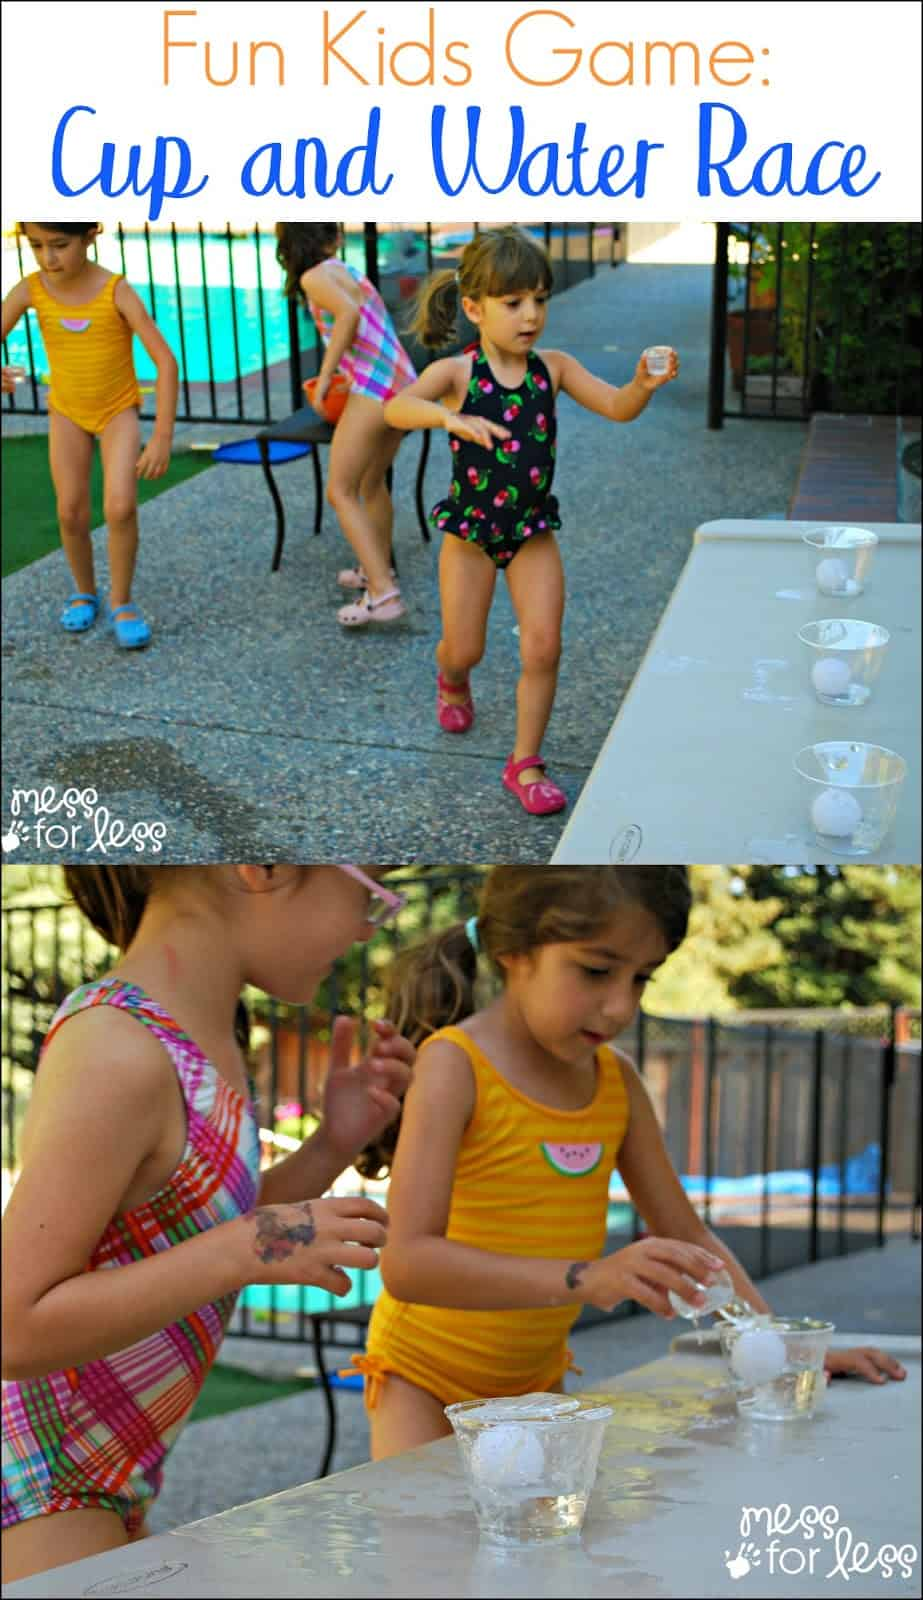 Fun Kids Game - Cup and Water Race. A great game for coordination and balance!